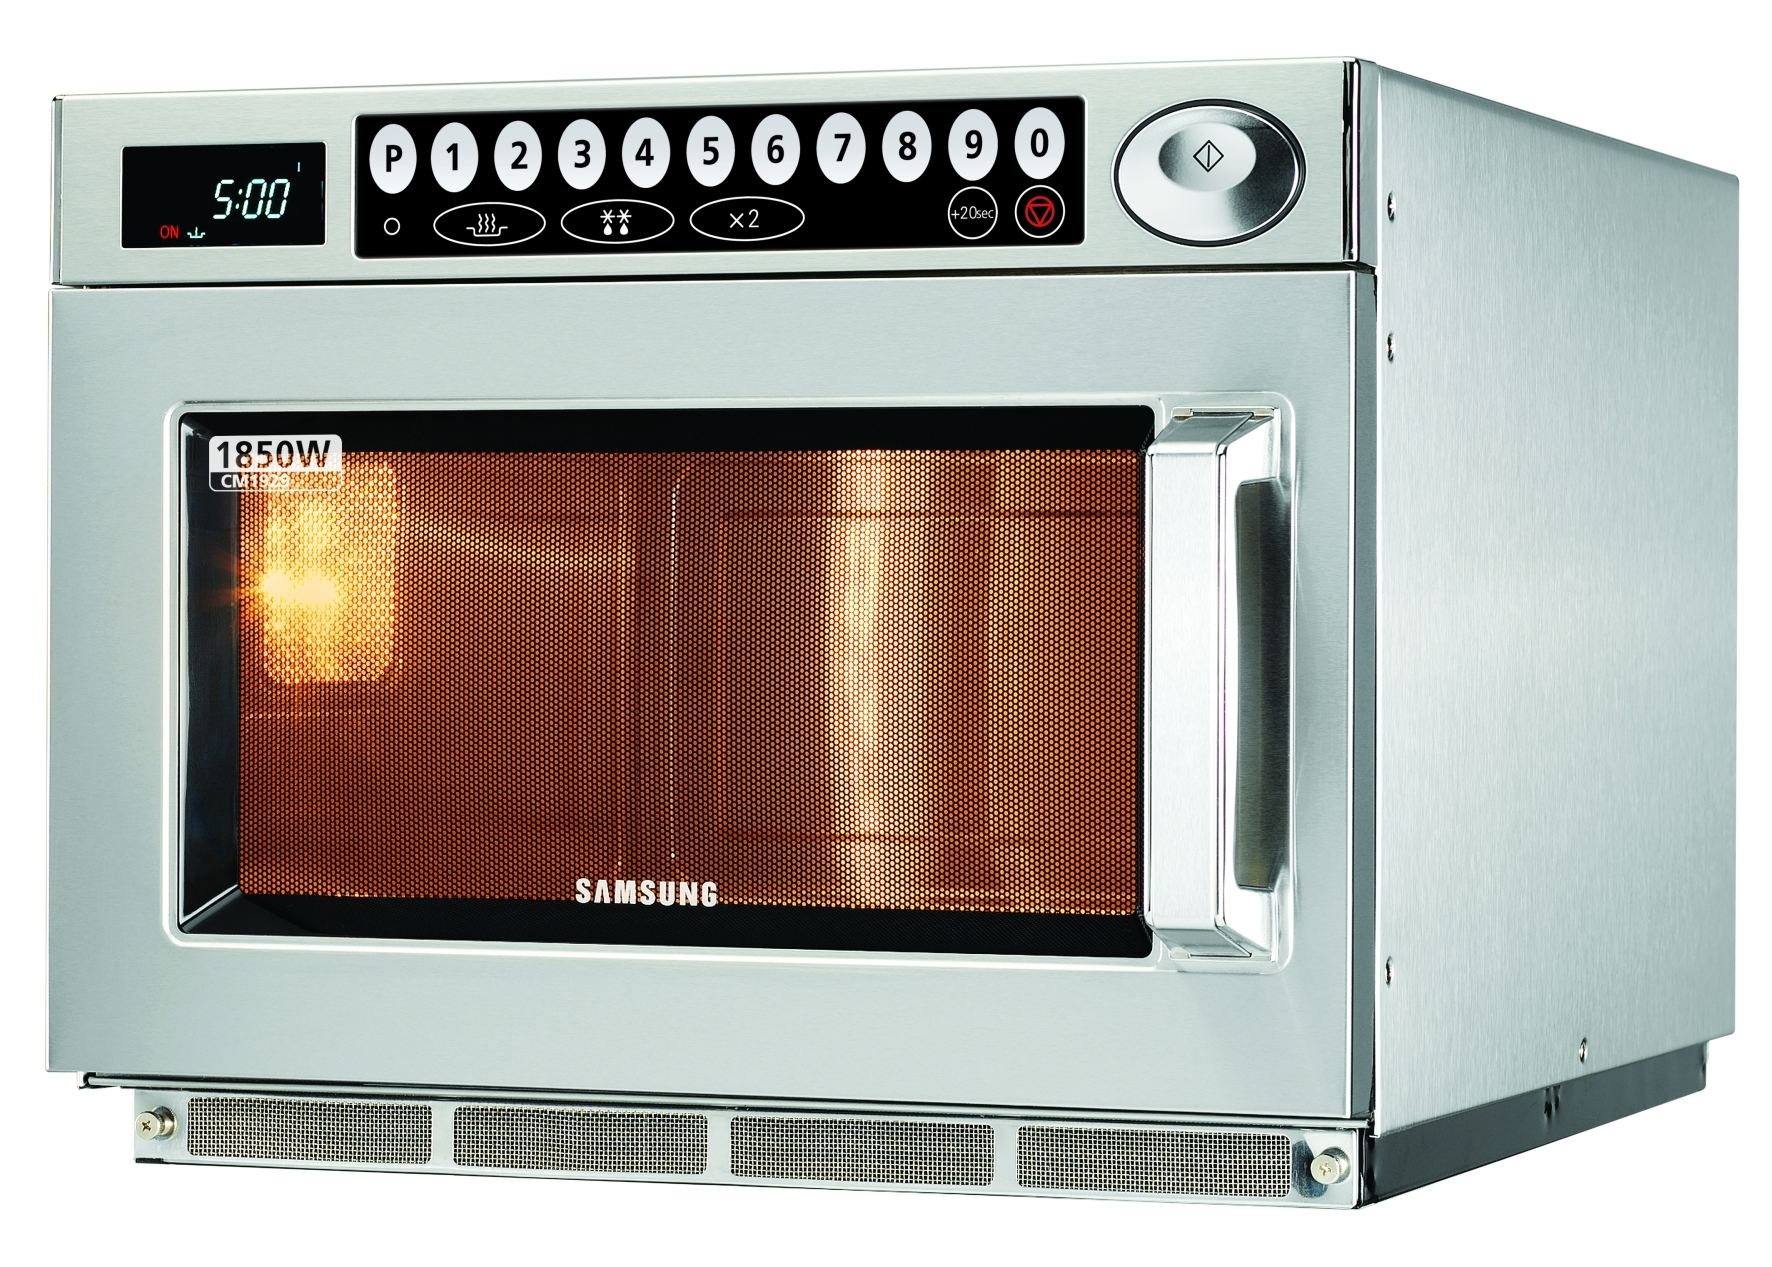 Microwave Oven Samsung Model Cm1929a Saro